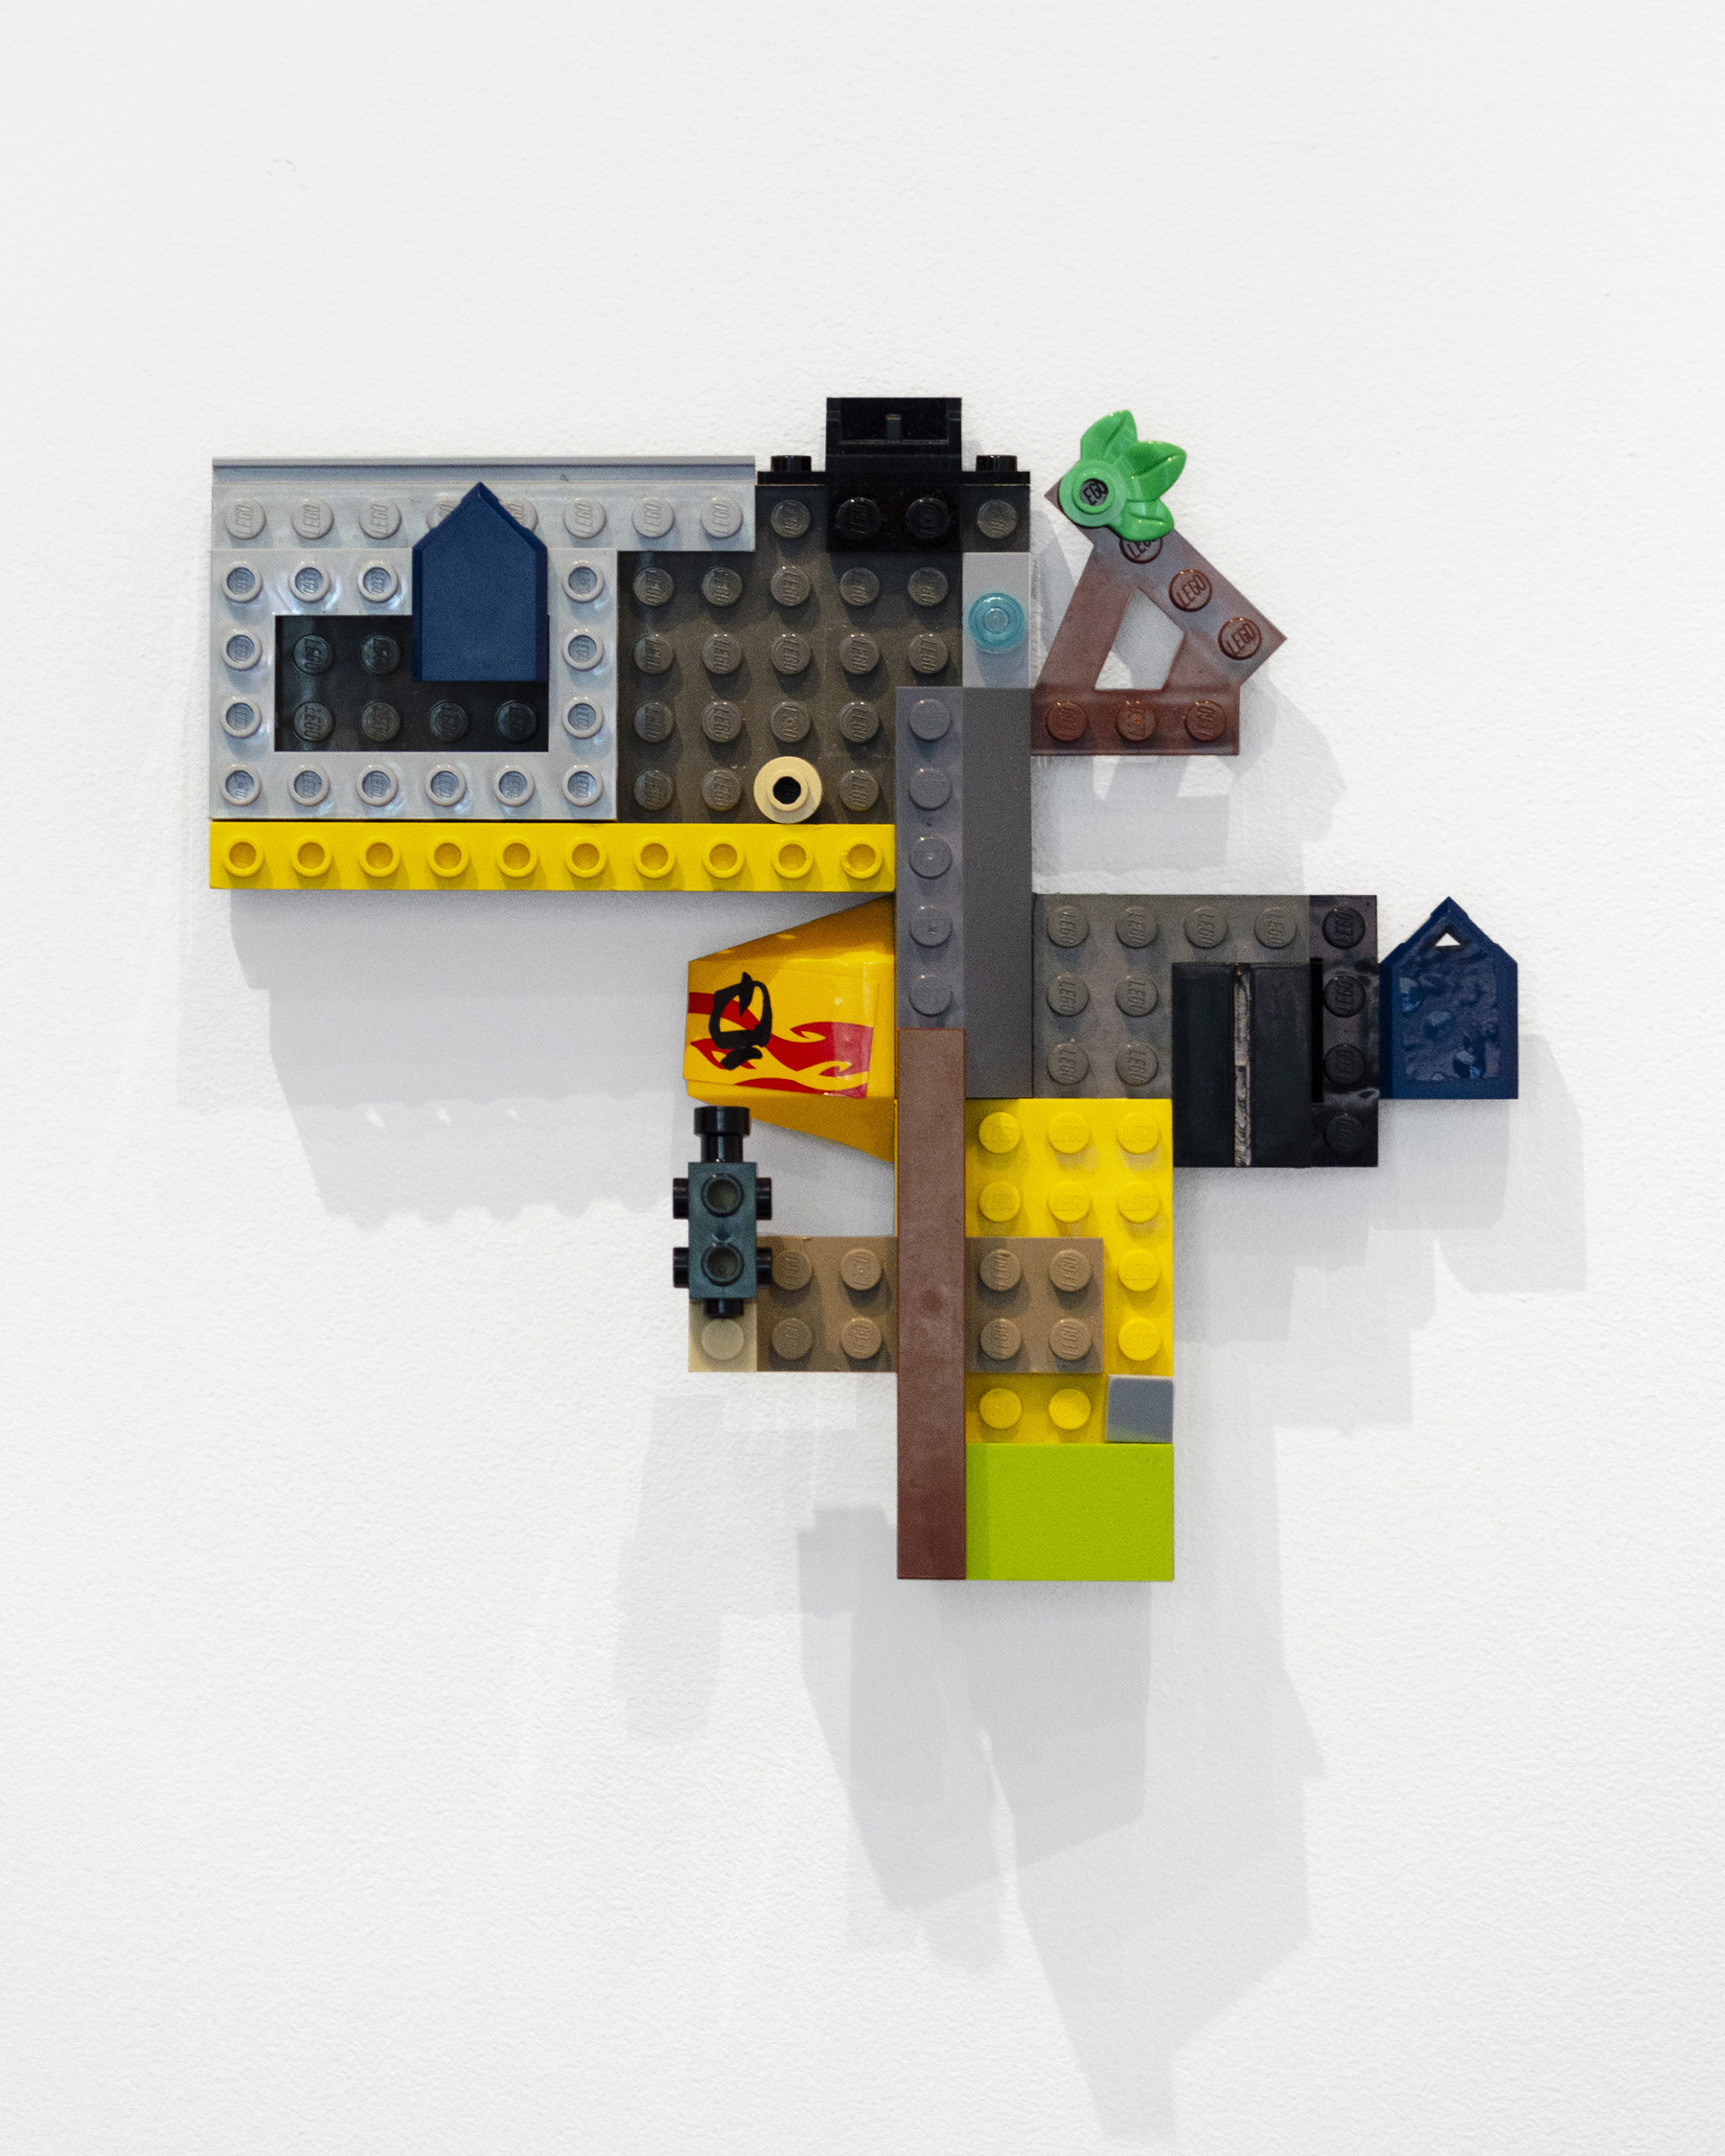 Marlowe Broomberg,  Lego Painting #2 (from Lego Paintings Series) , 2019, Lego pieces, 5.5 x 6 x 1 inches (14 x 15 x 2.5 cm), Unique edition